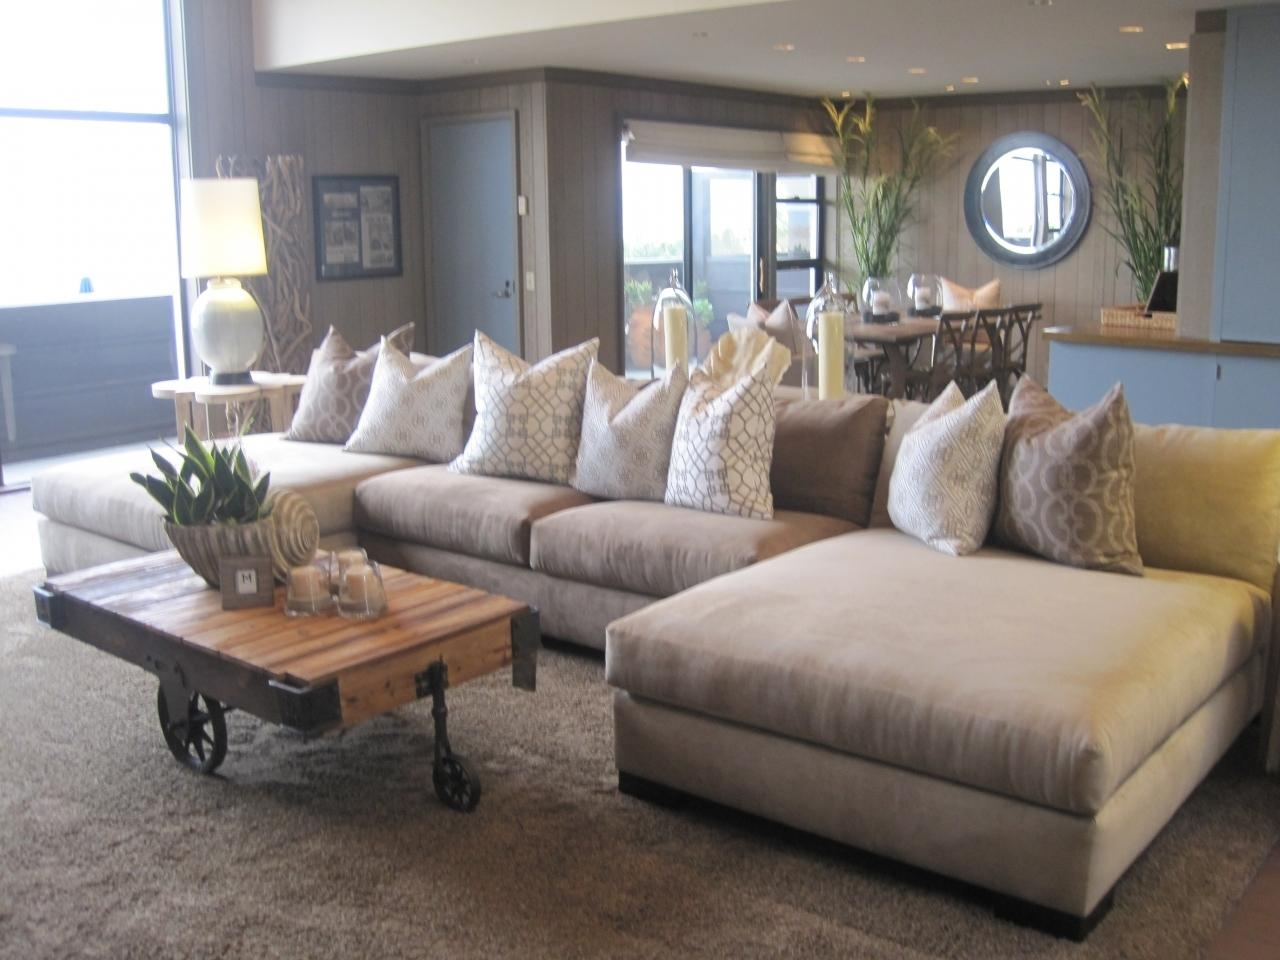 Sofas Center : Large Sectional Sofa Sofas With Recliners For Sale Within Extra Large Sectional Sofas (View 6 of 15)